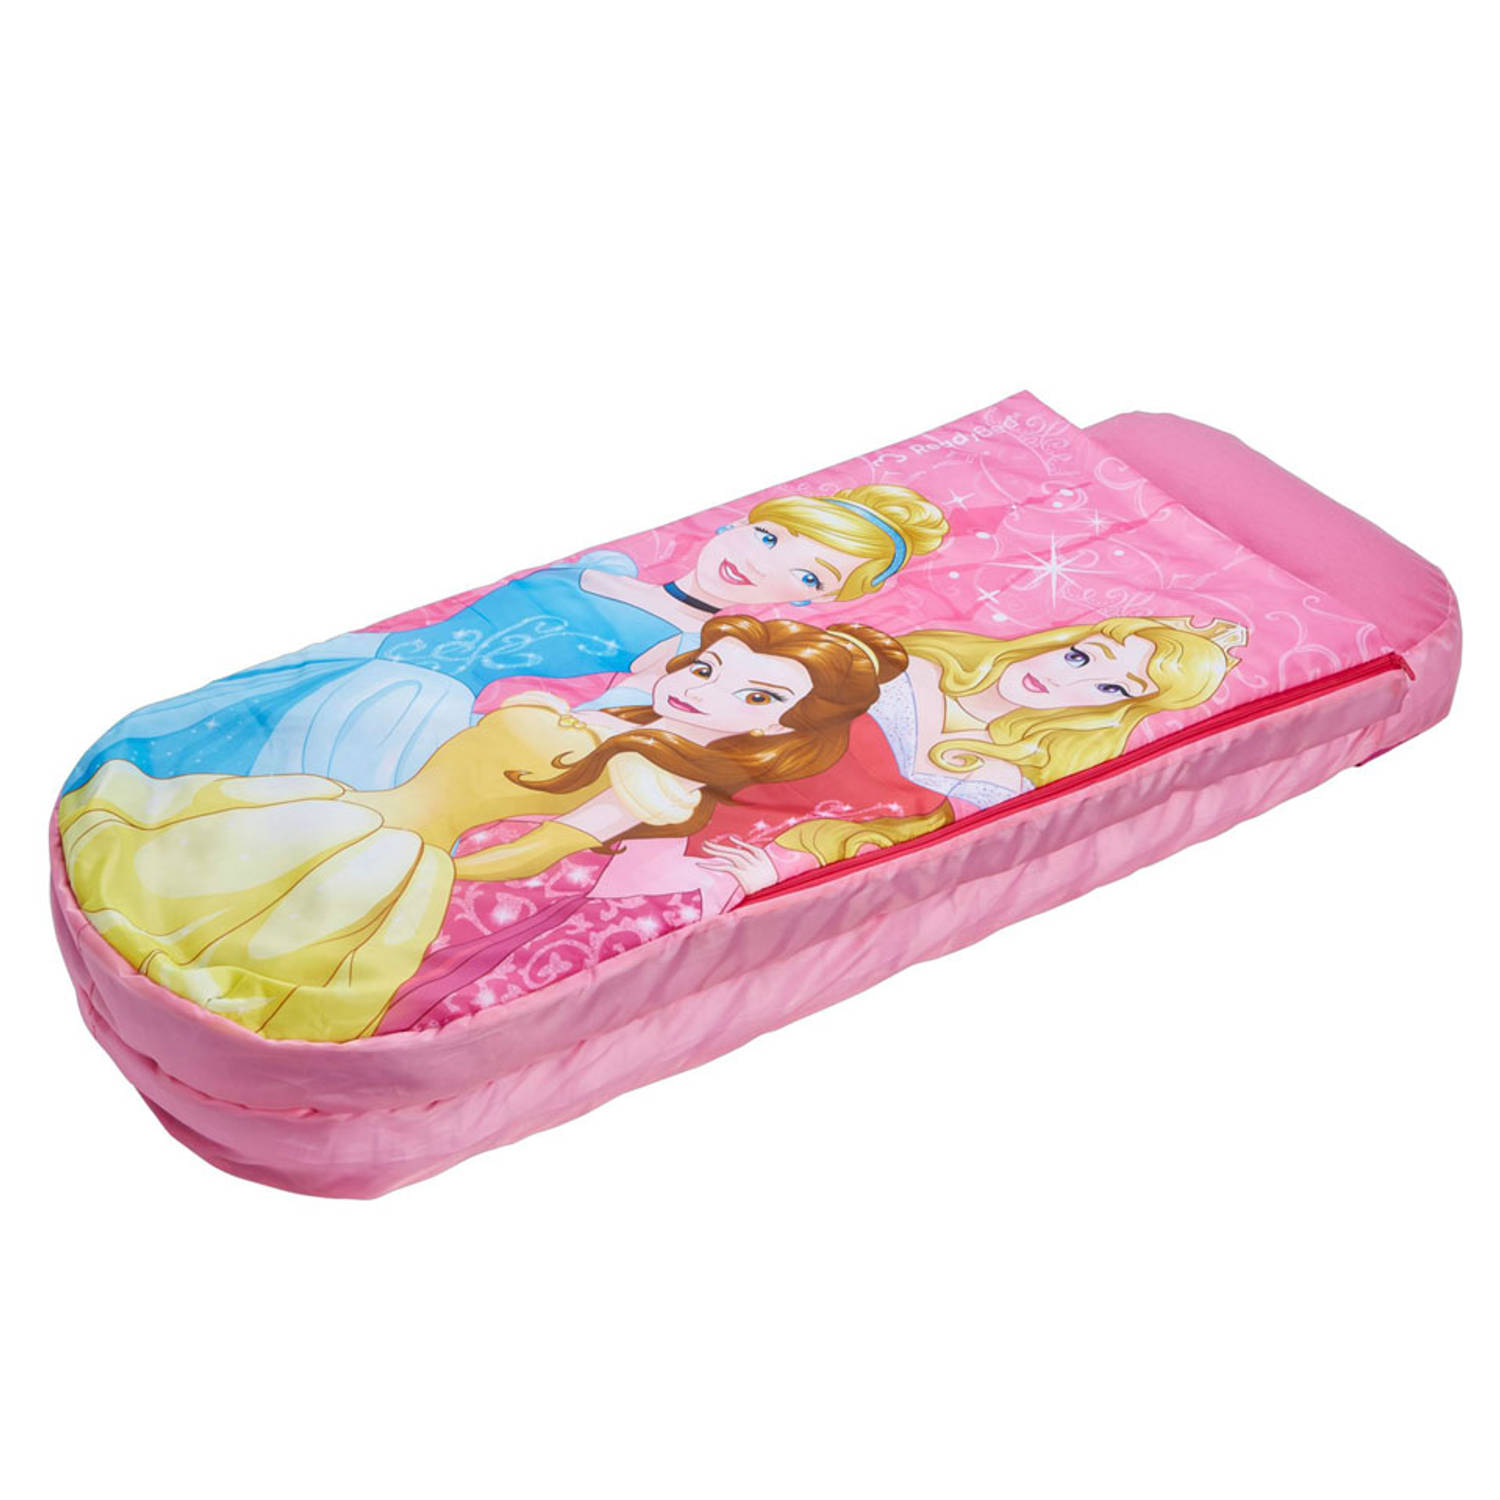 Disney Princess readybed